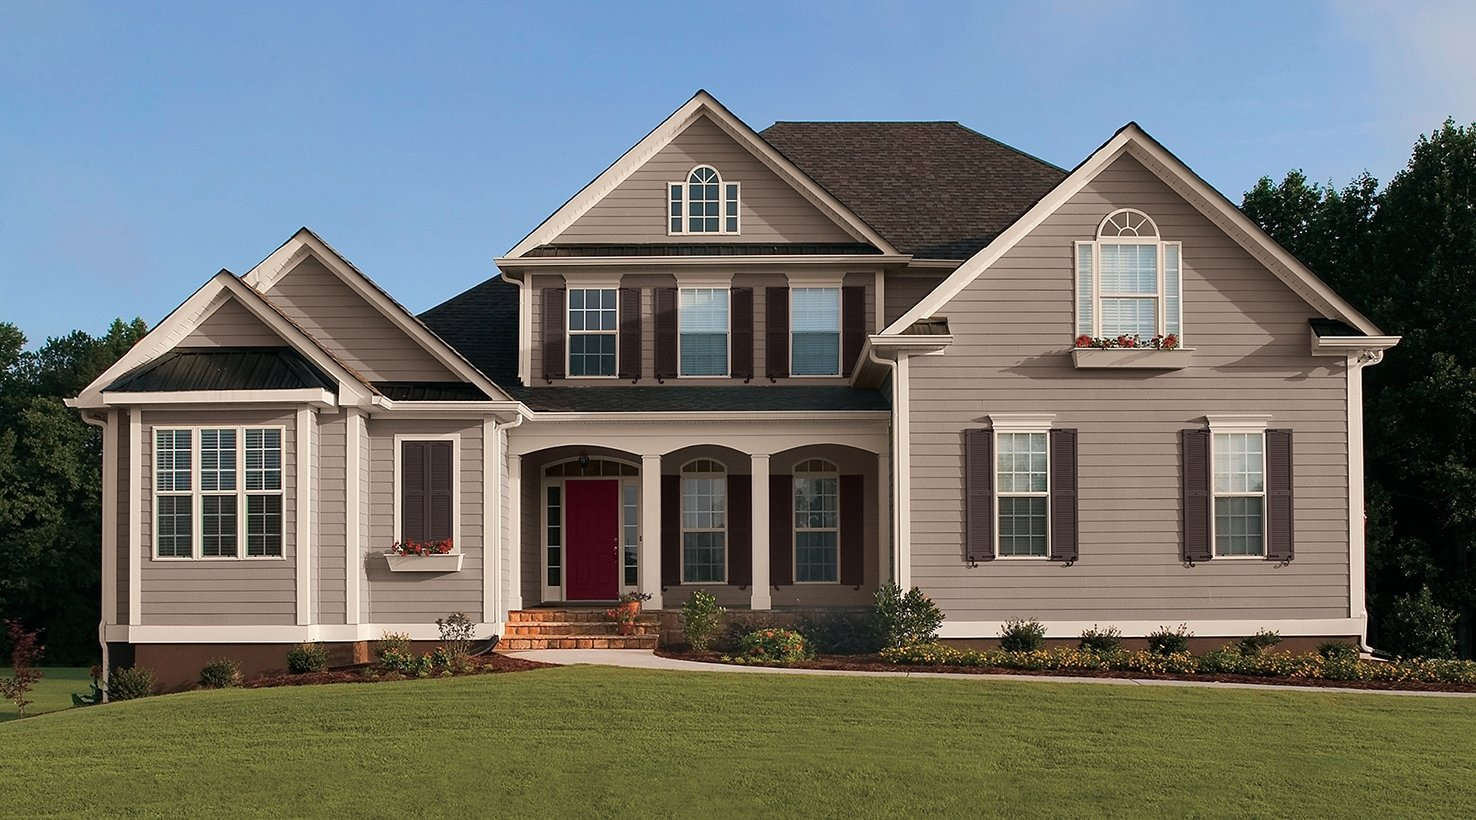 10 Fantastic Exterior Paint Ideas For Homes exterior color inspiration body paint colors sherwin williams 1 2021